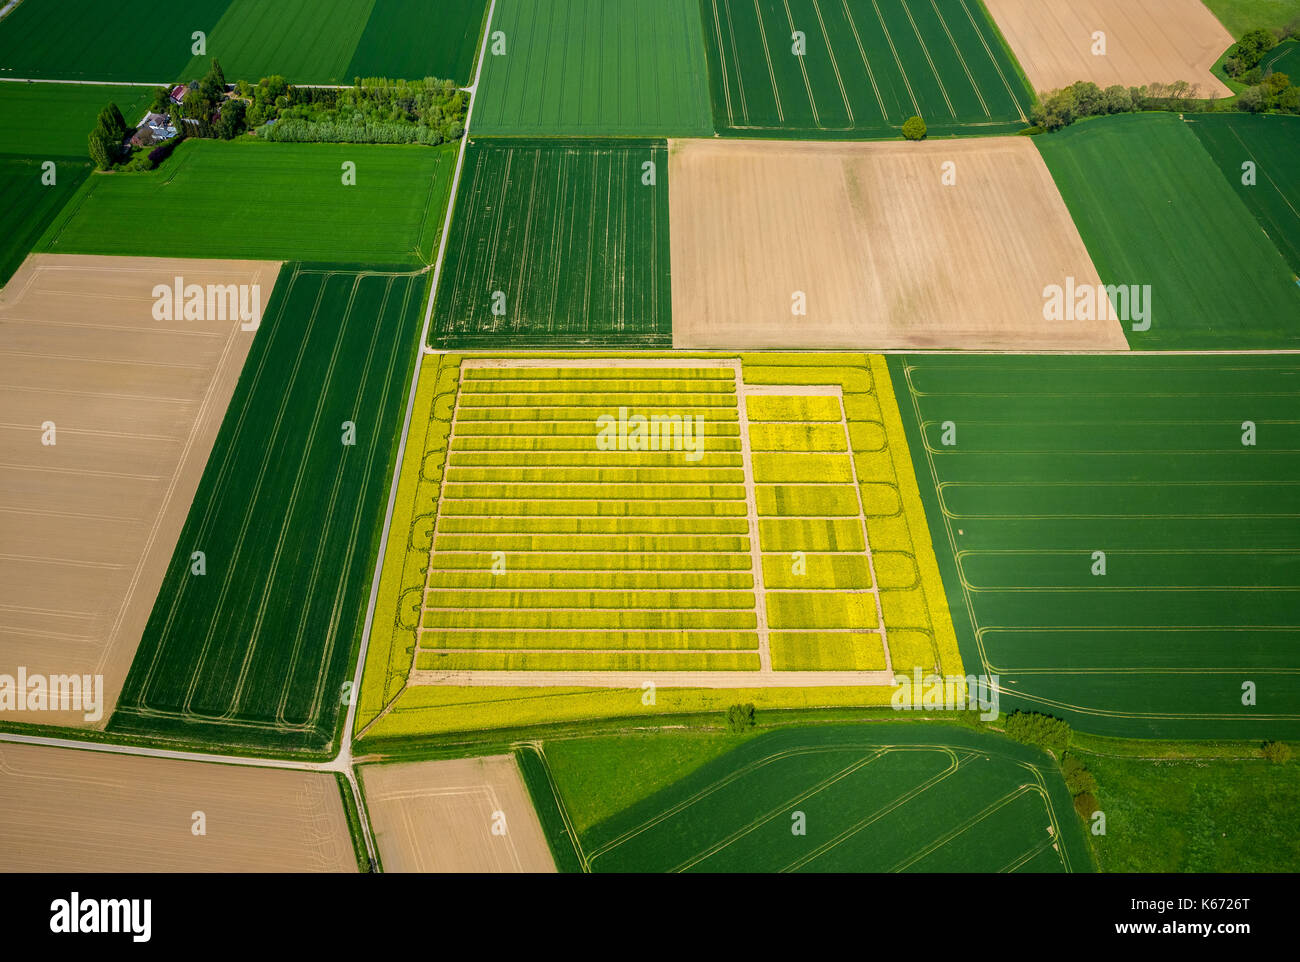 Canola field with divisions for Testsaat, Landwirtschft, agricultural cropland, agricultural test site, Saatoptimierung, yellow rapeseed field in gree - Stock Image